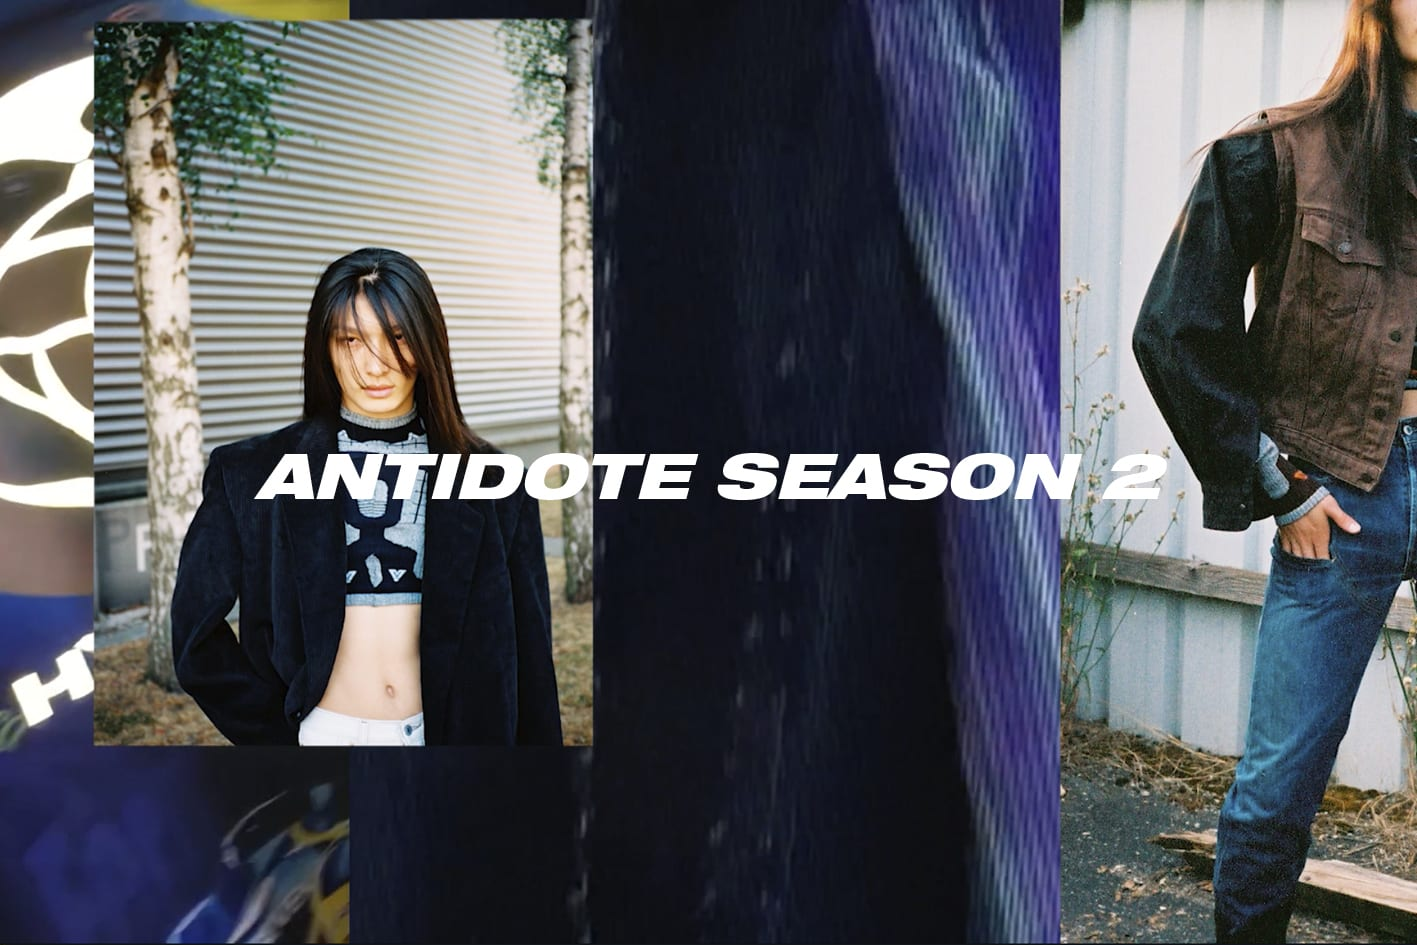 Antidote Dévoile Sa Nouvelle Collection De Vêtements : Antidote Season 2